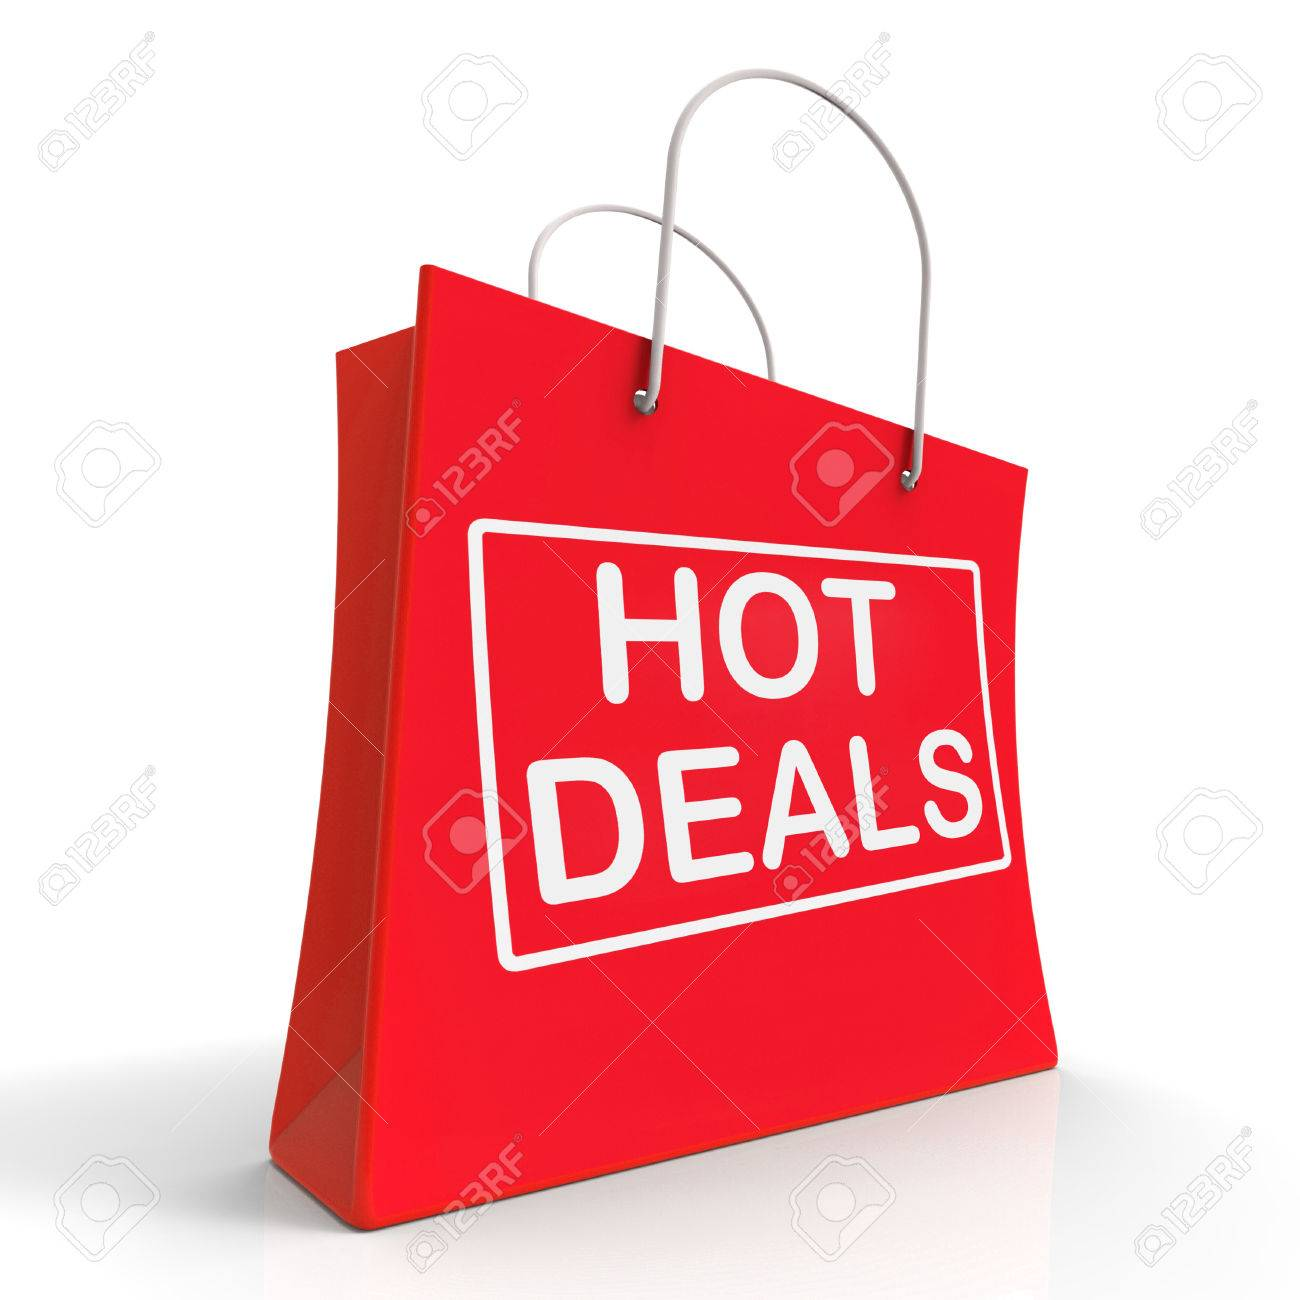 Hot Deals On Shopping Bags Showing Bargains Sale And Save Stock Photo Picture And Royalty Free Image Image 26416344